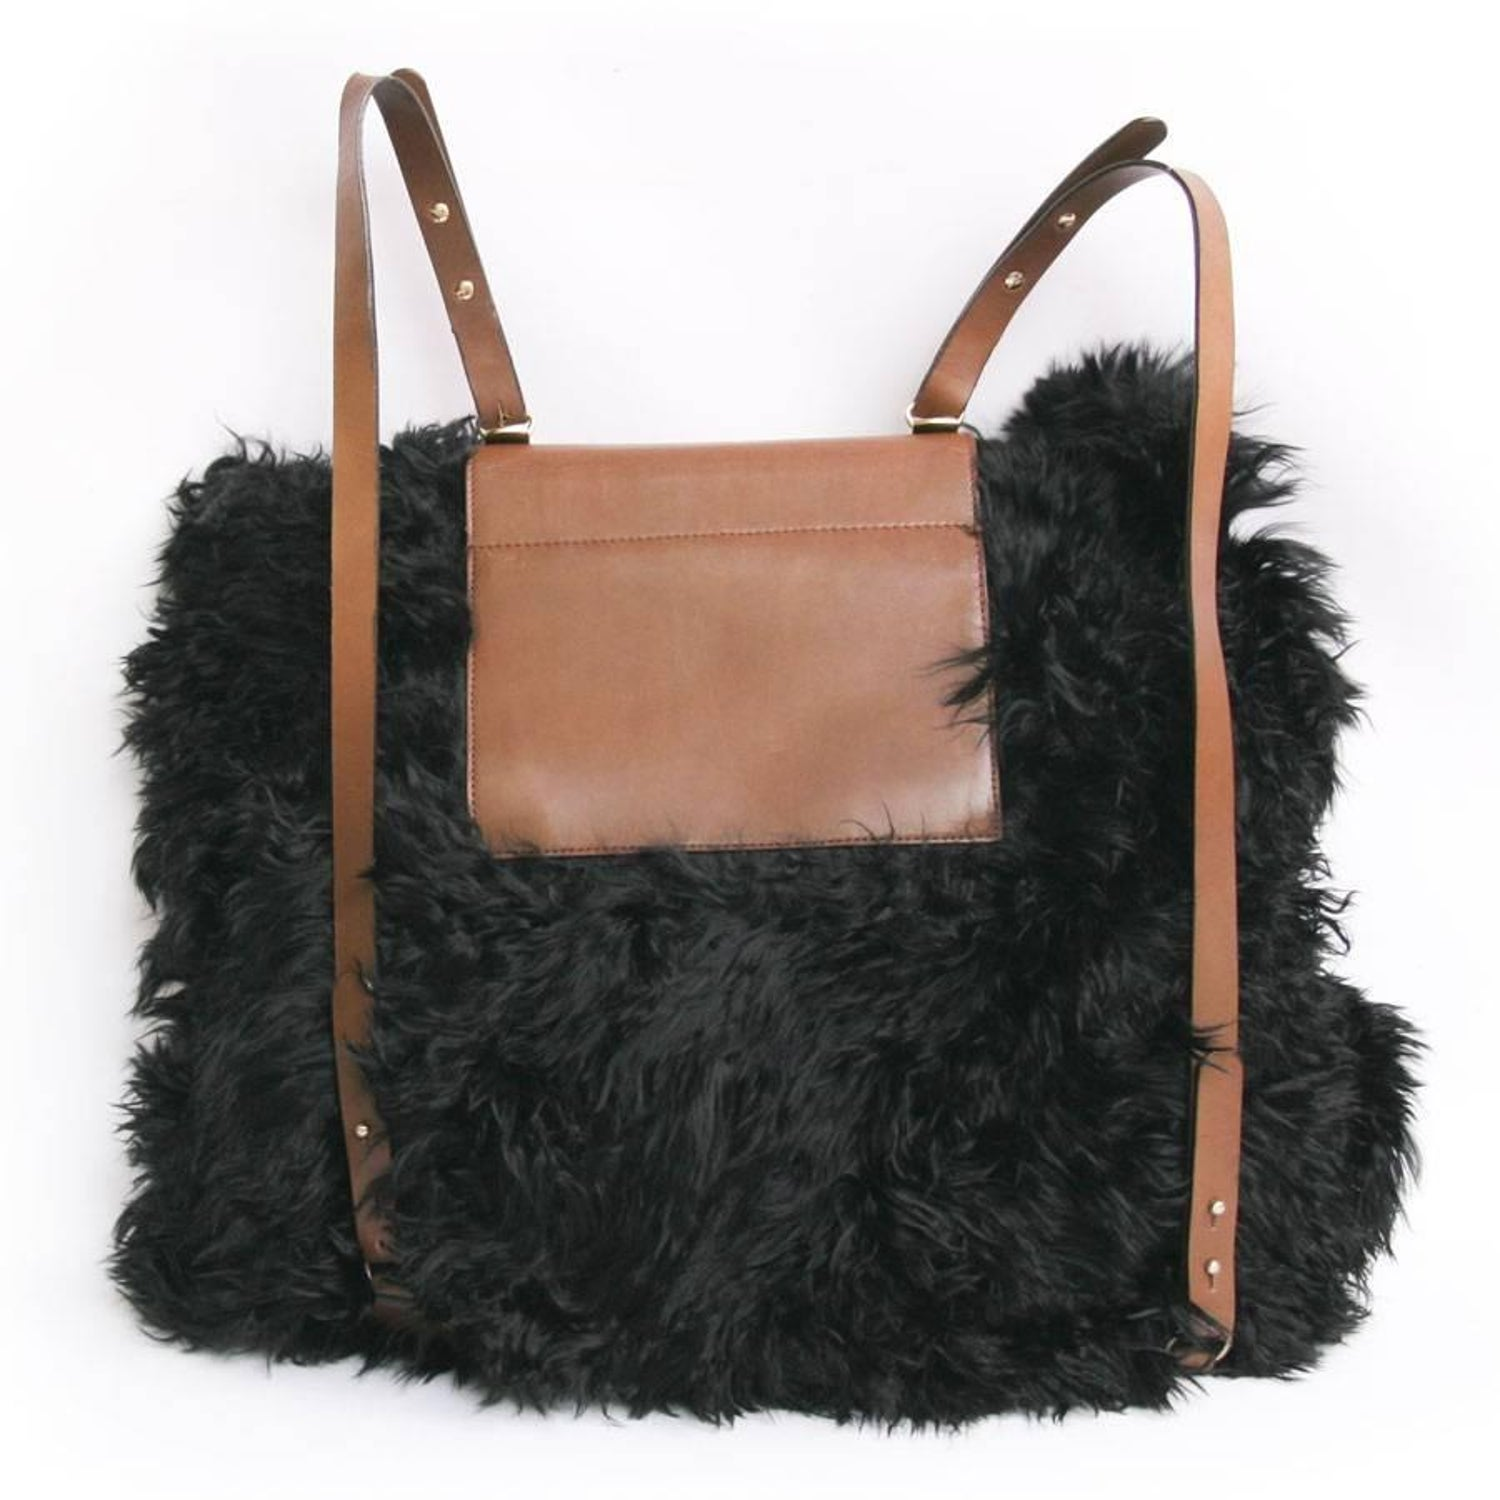 1a96dc8216d MARNI Backpack in Black fur and Natural Leather For Sale at 1stdibs